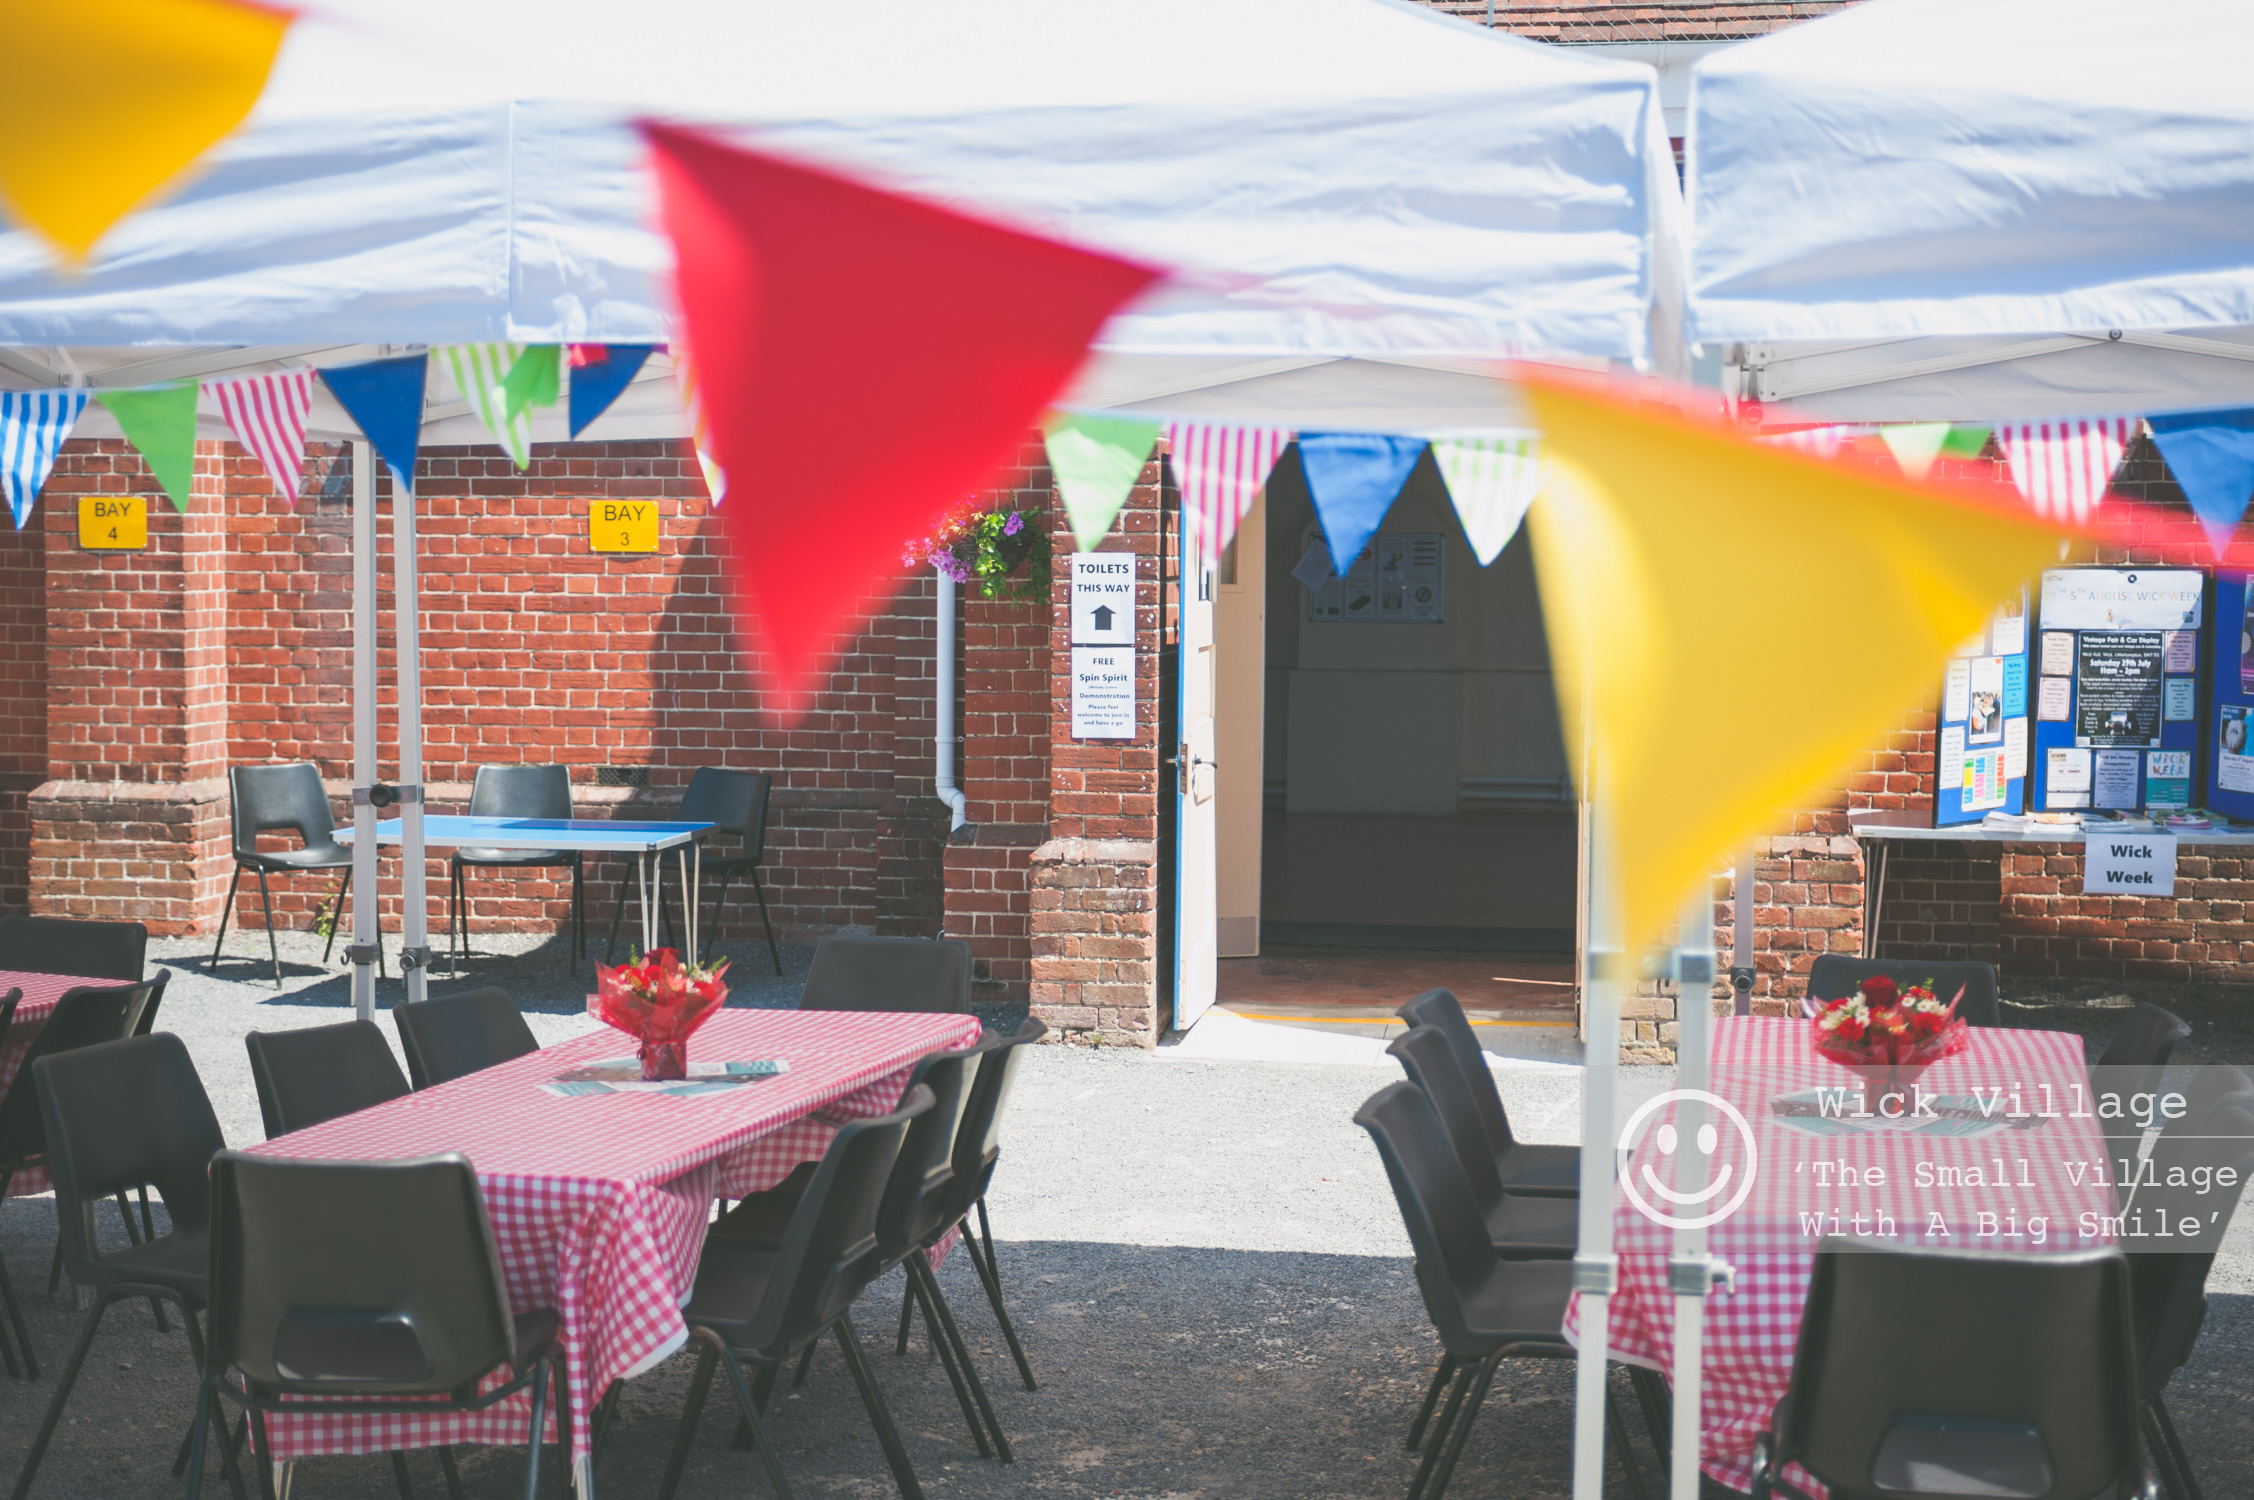 Hire a stall at a Wick Village event in Littlehampton, West Sussex. Photo © Scott Ramsey/Wick Village Traders Association